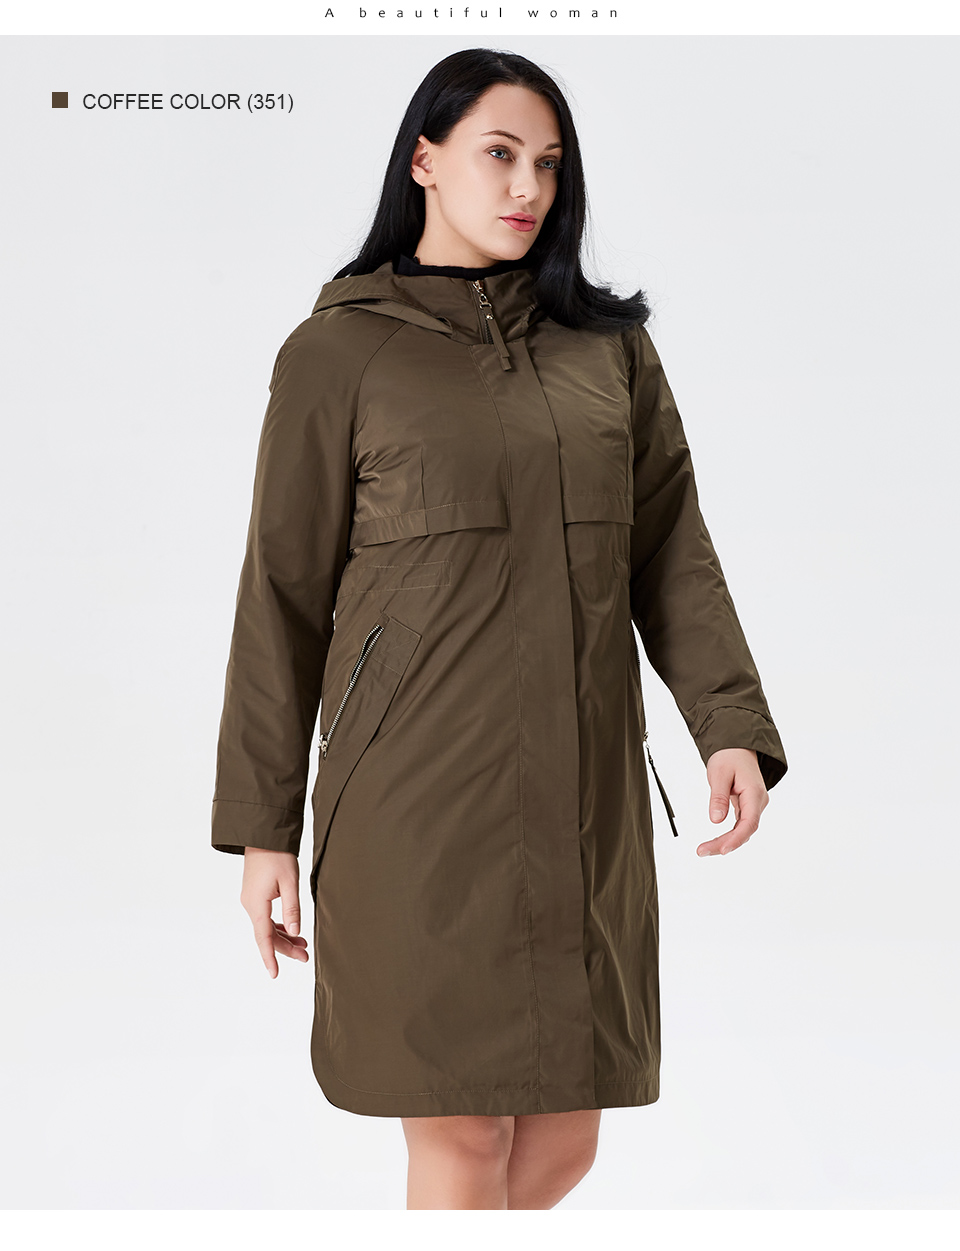 19 Trench Coat Spring And Autumn Women Causal coat Long Sleeve With Hood Solid color female moda muje High Quality new AS-9046 12